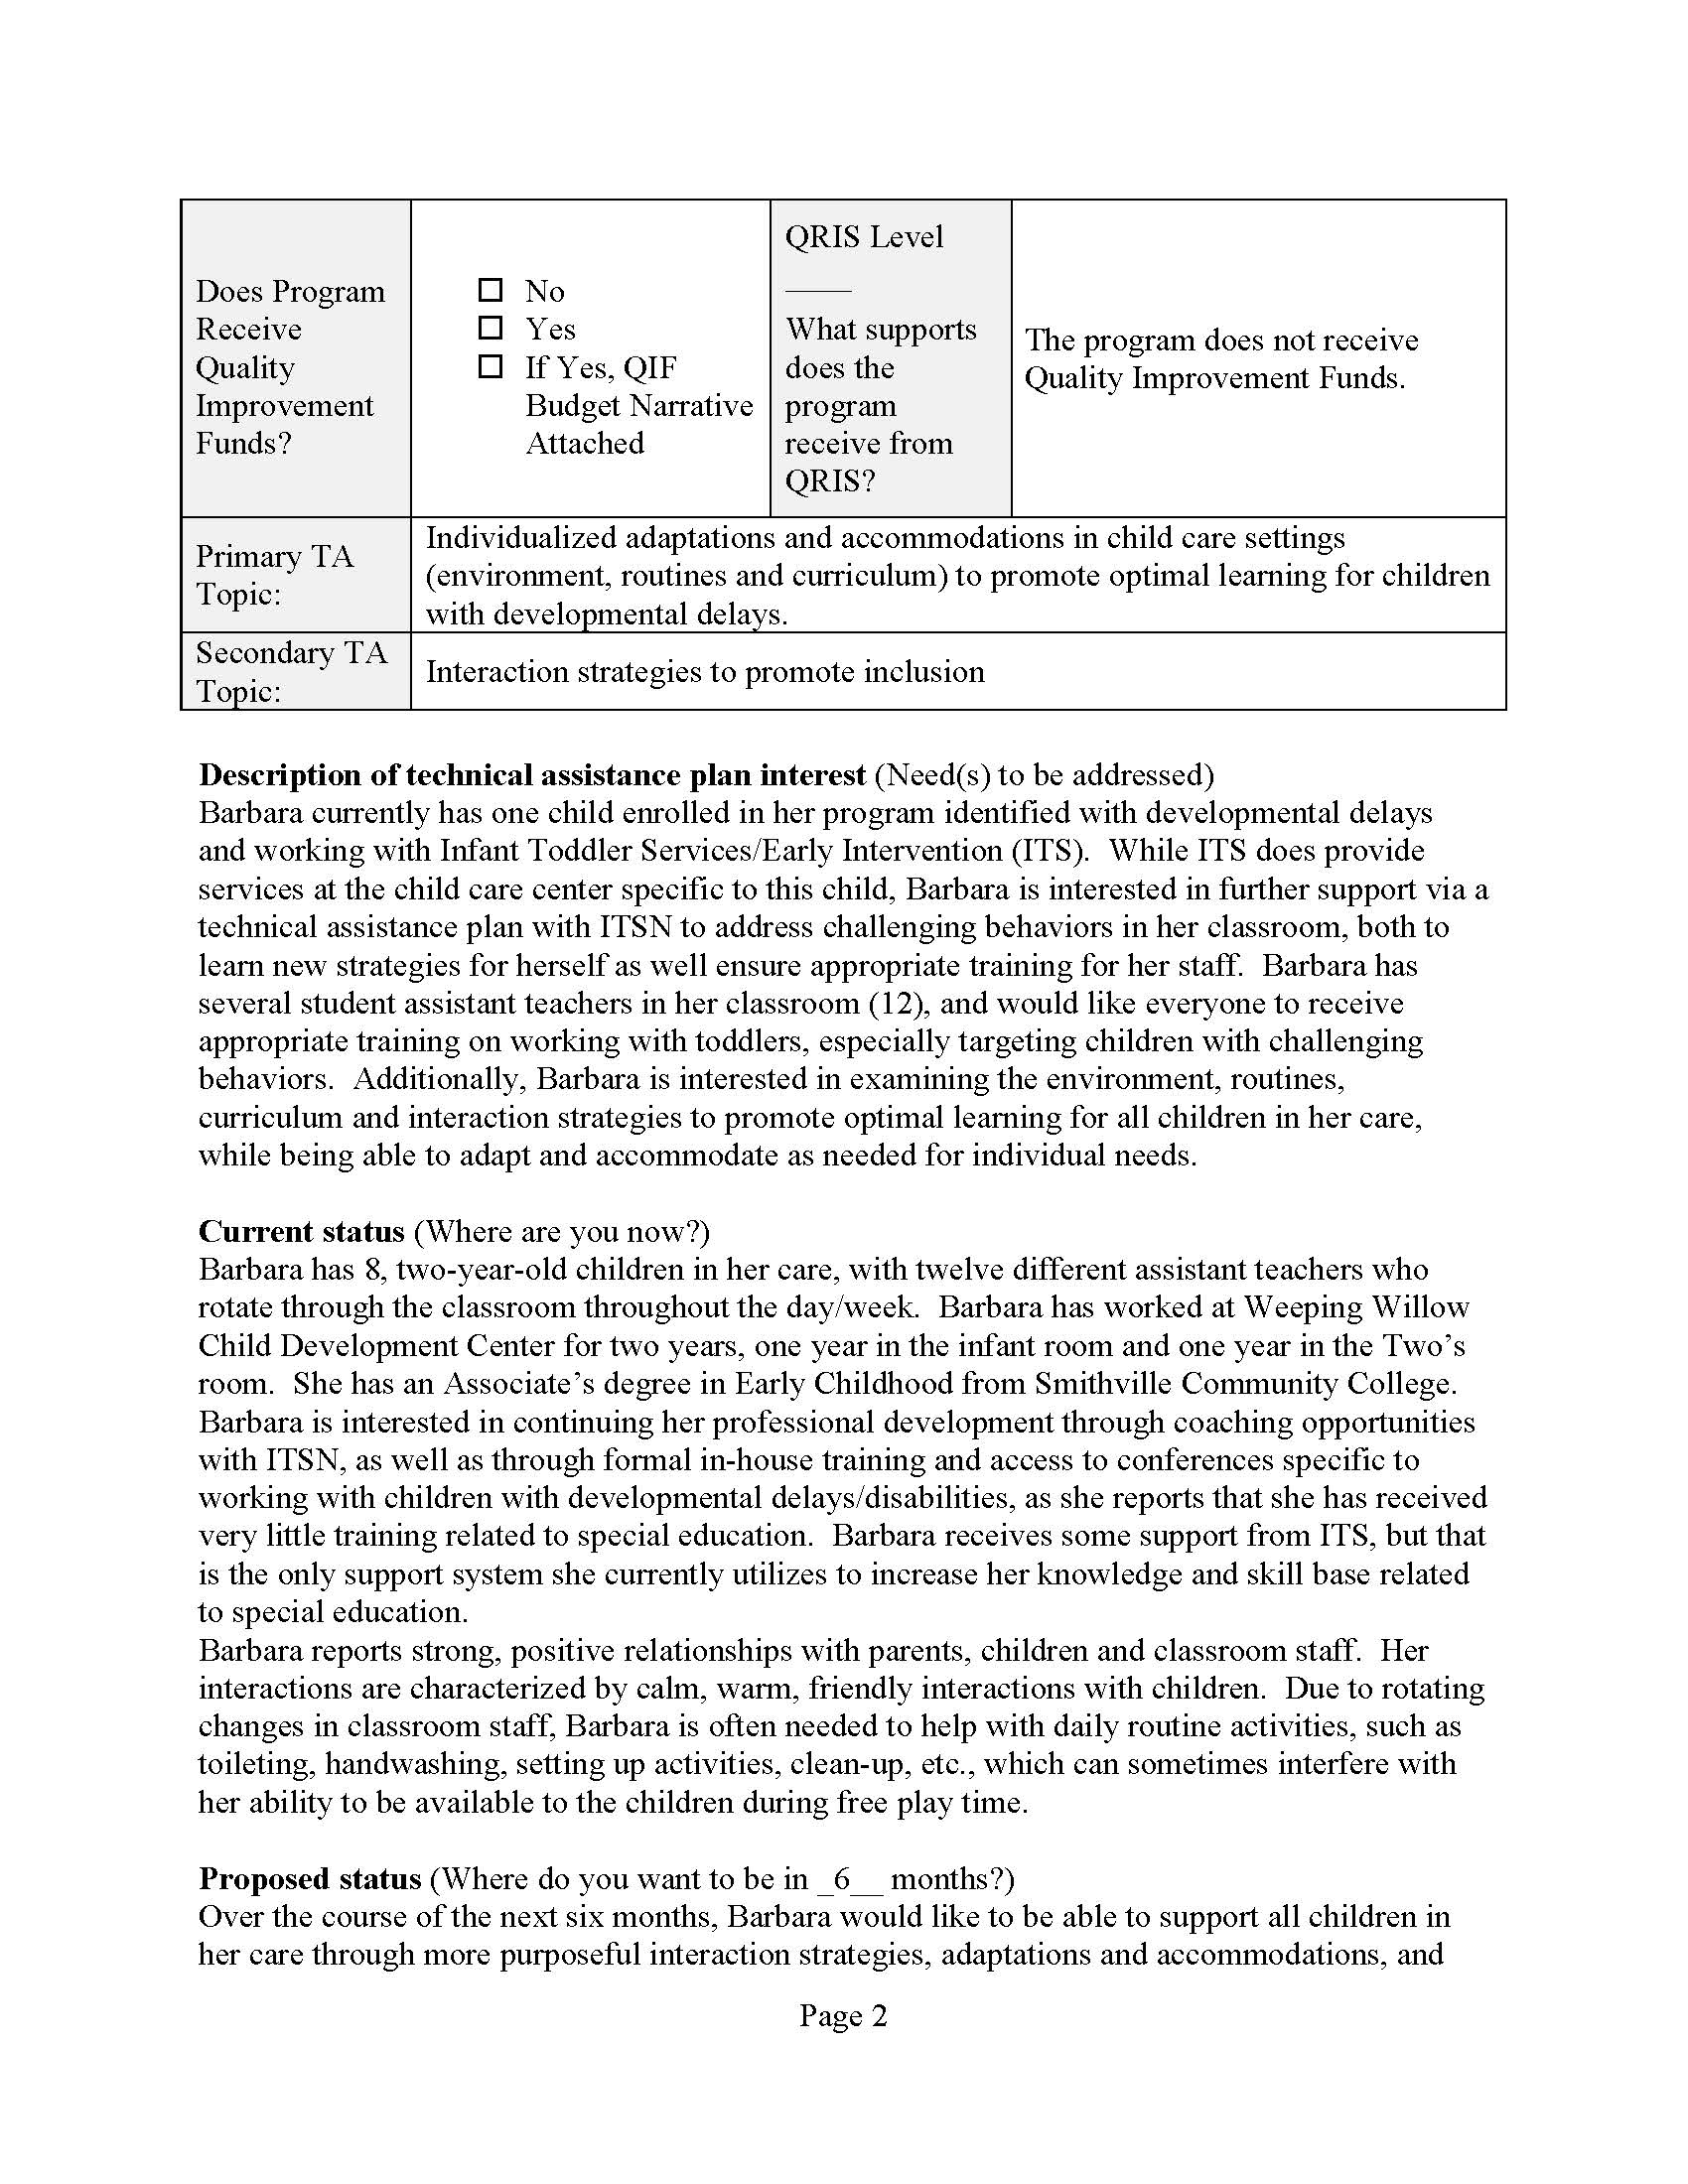 Page 2 KCCTO-KITS ITSN Technical Assistance Plan Example